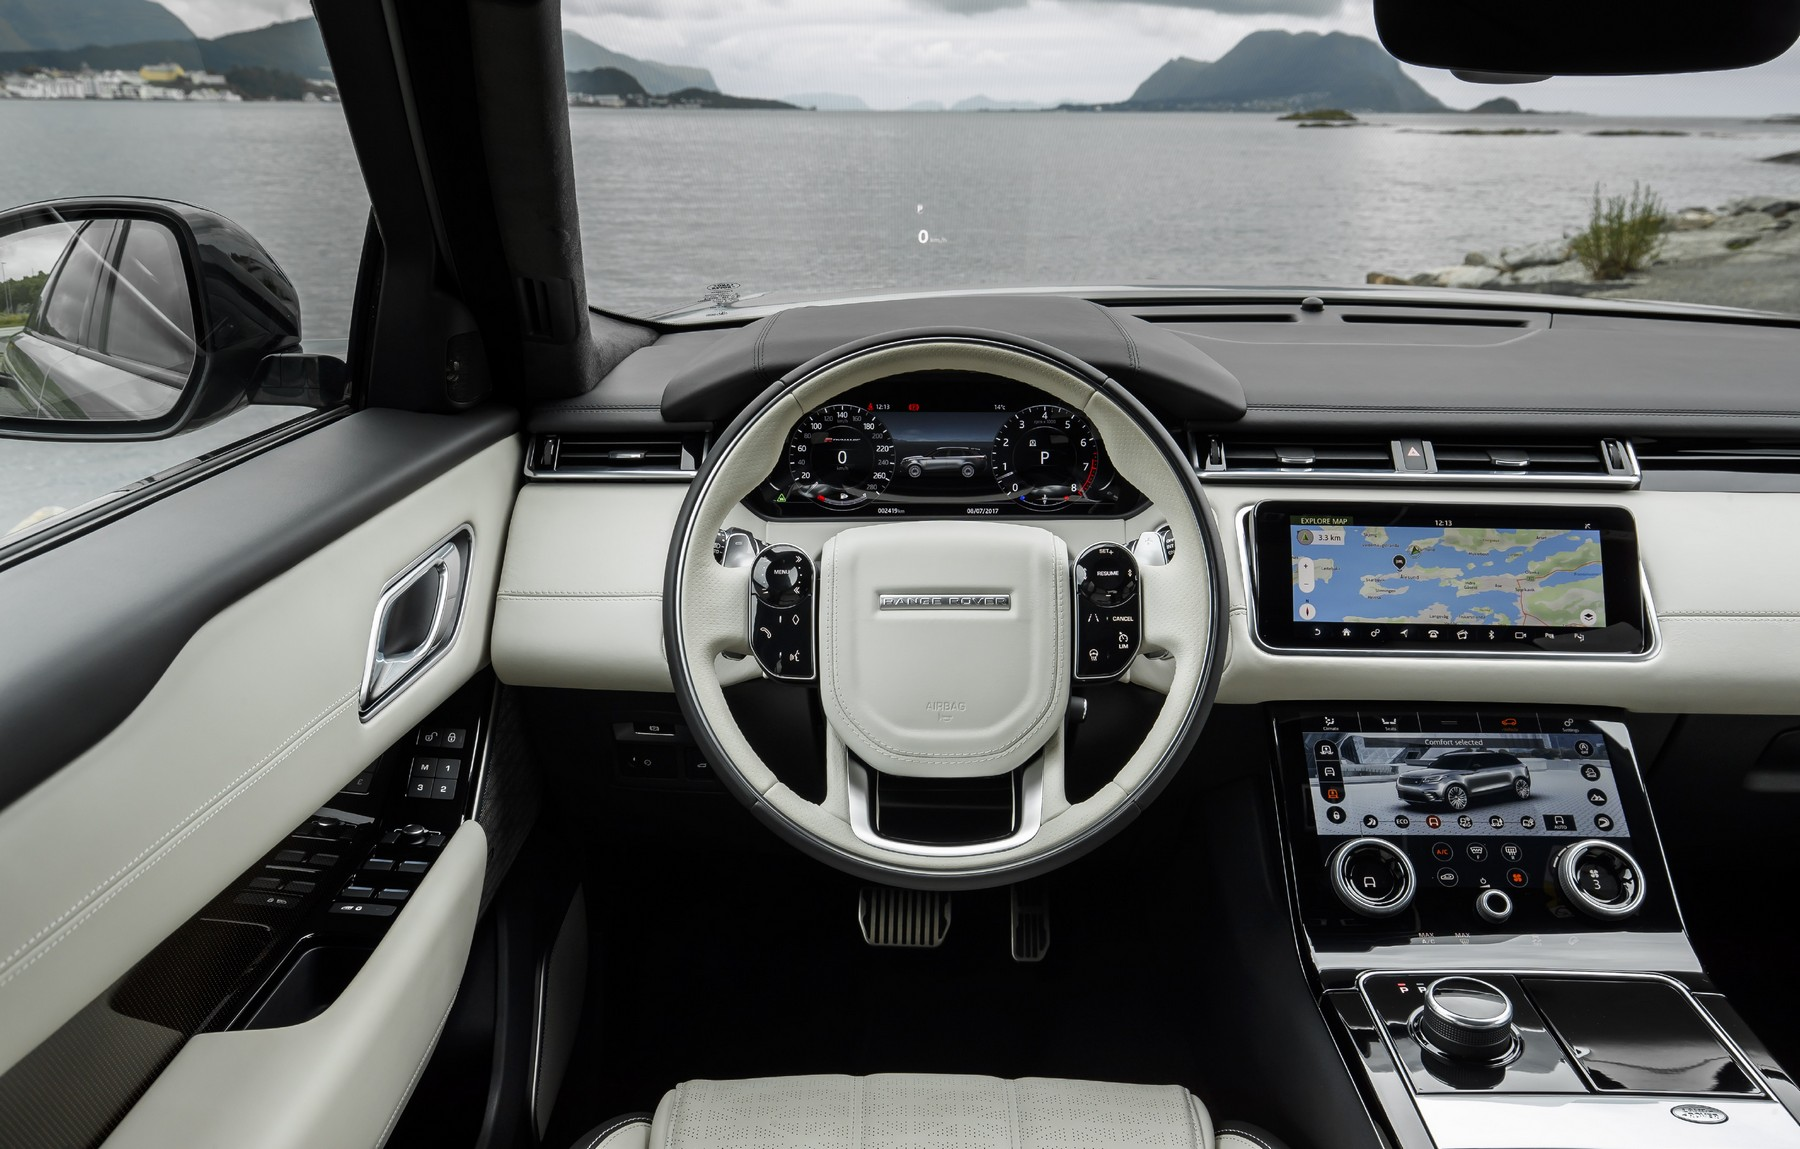 Range rover velar attacke auf gle und cayenne for Interno velar